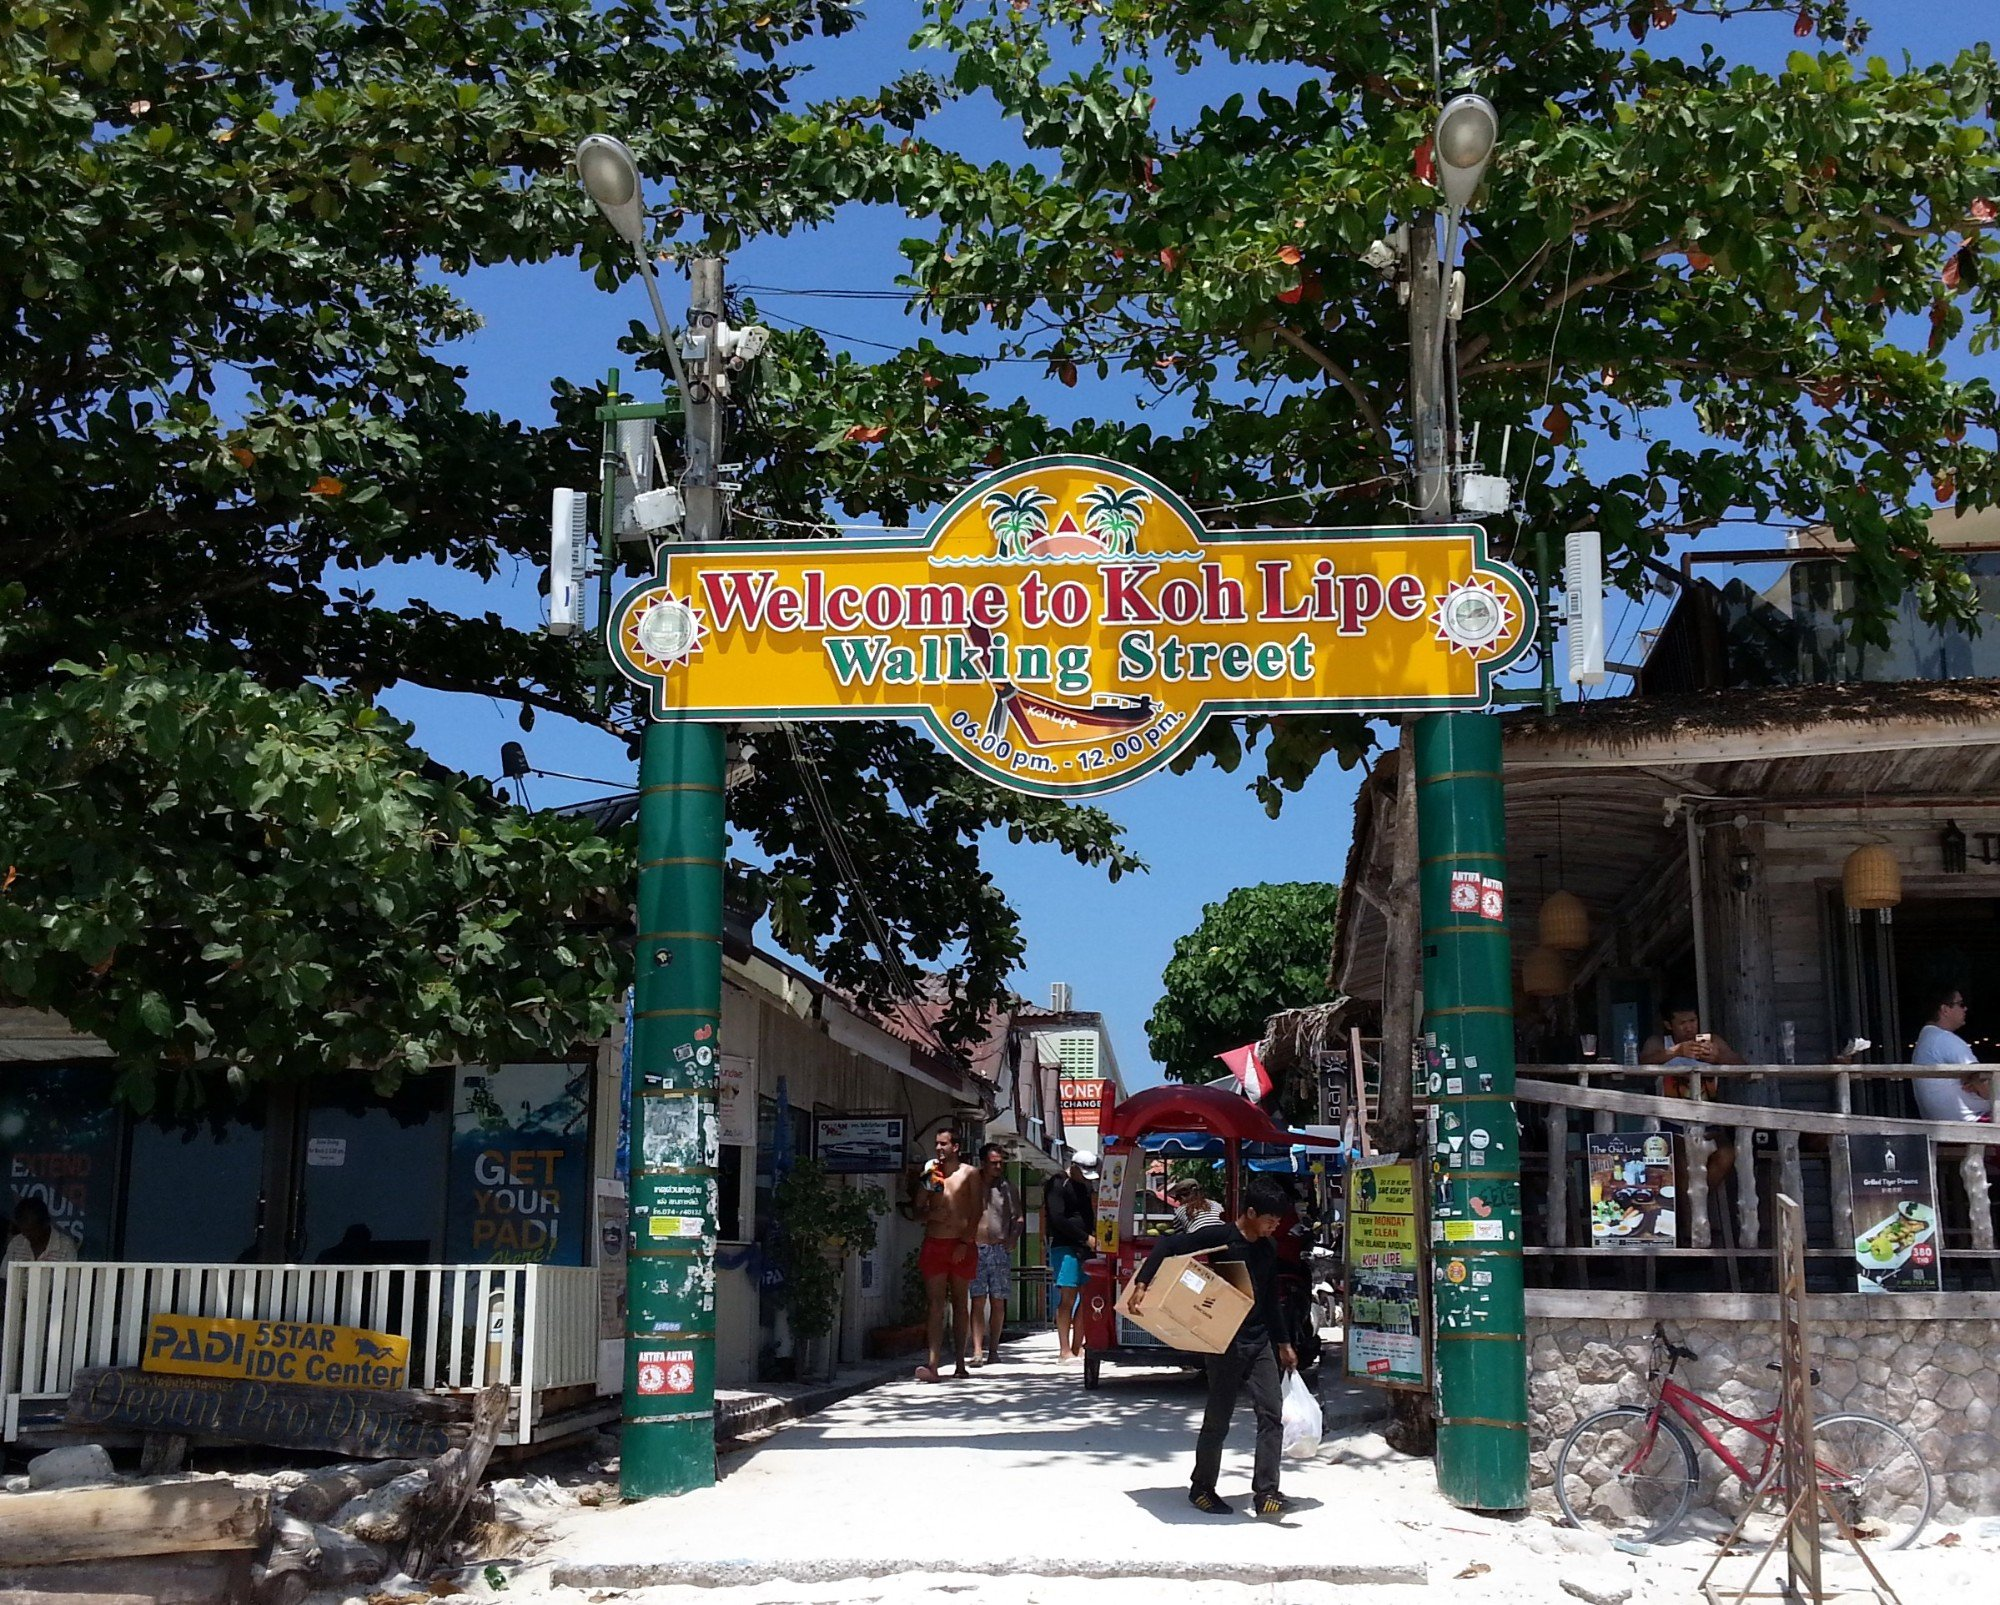 Entrance to Koh Lipe Walking Street